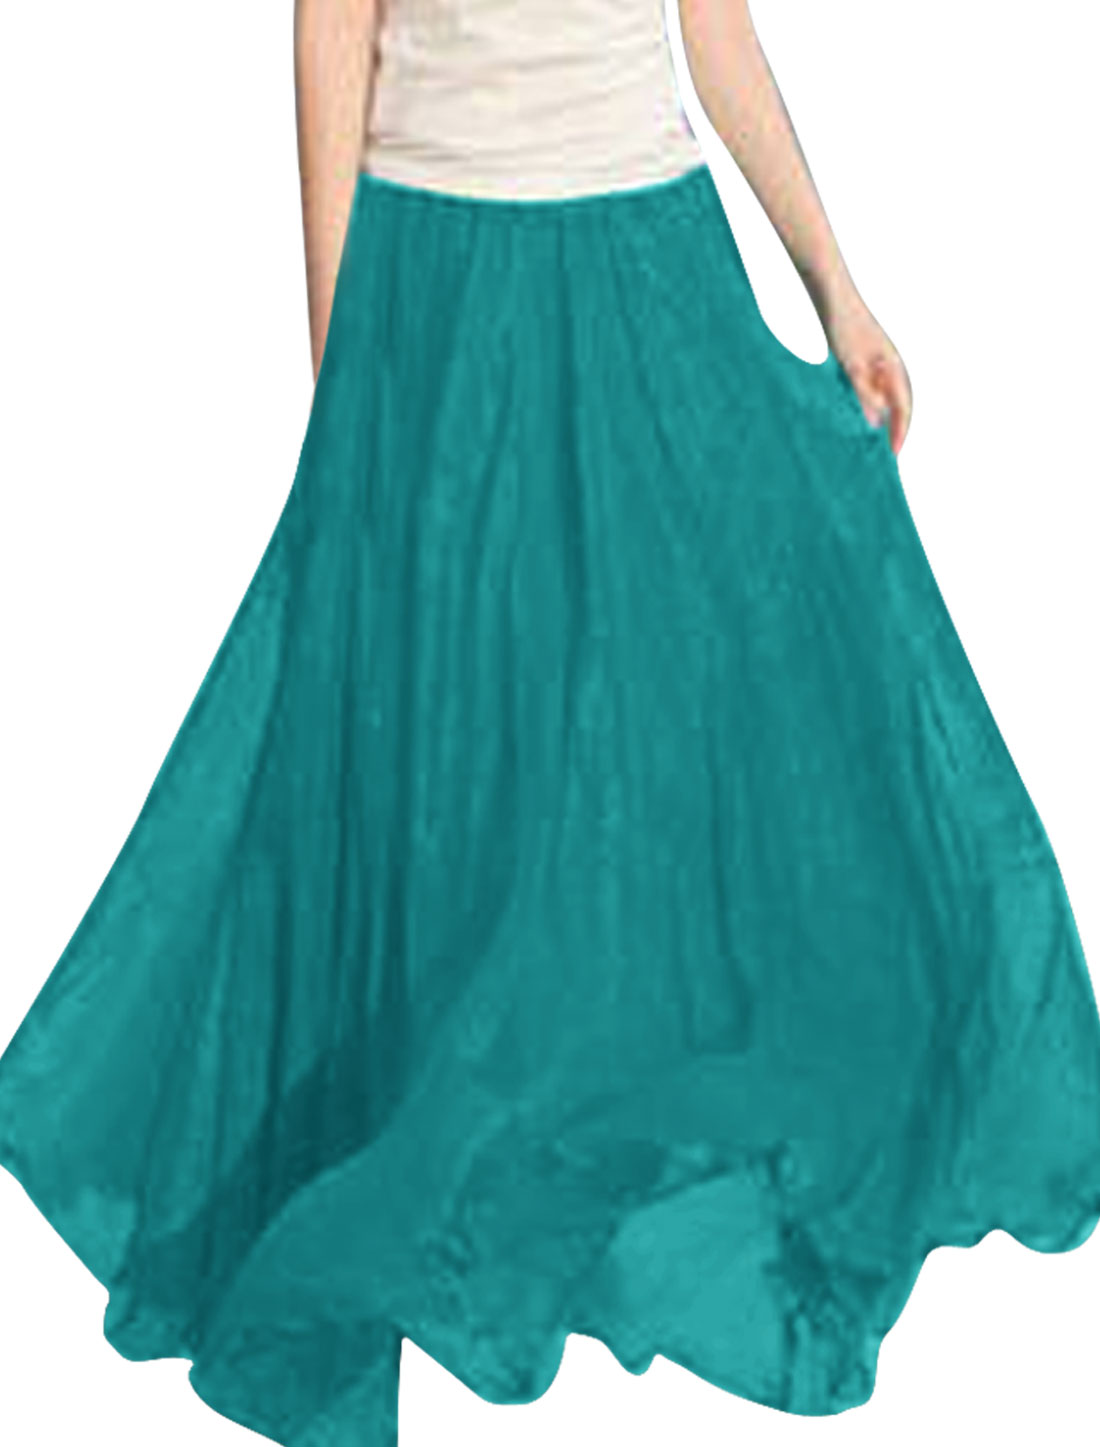 Women Ruched Detail Sweet Fashion Skirt Aqua XS